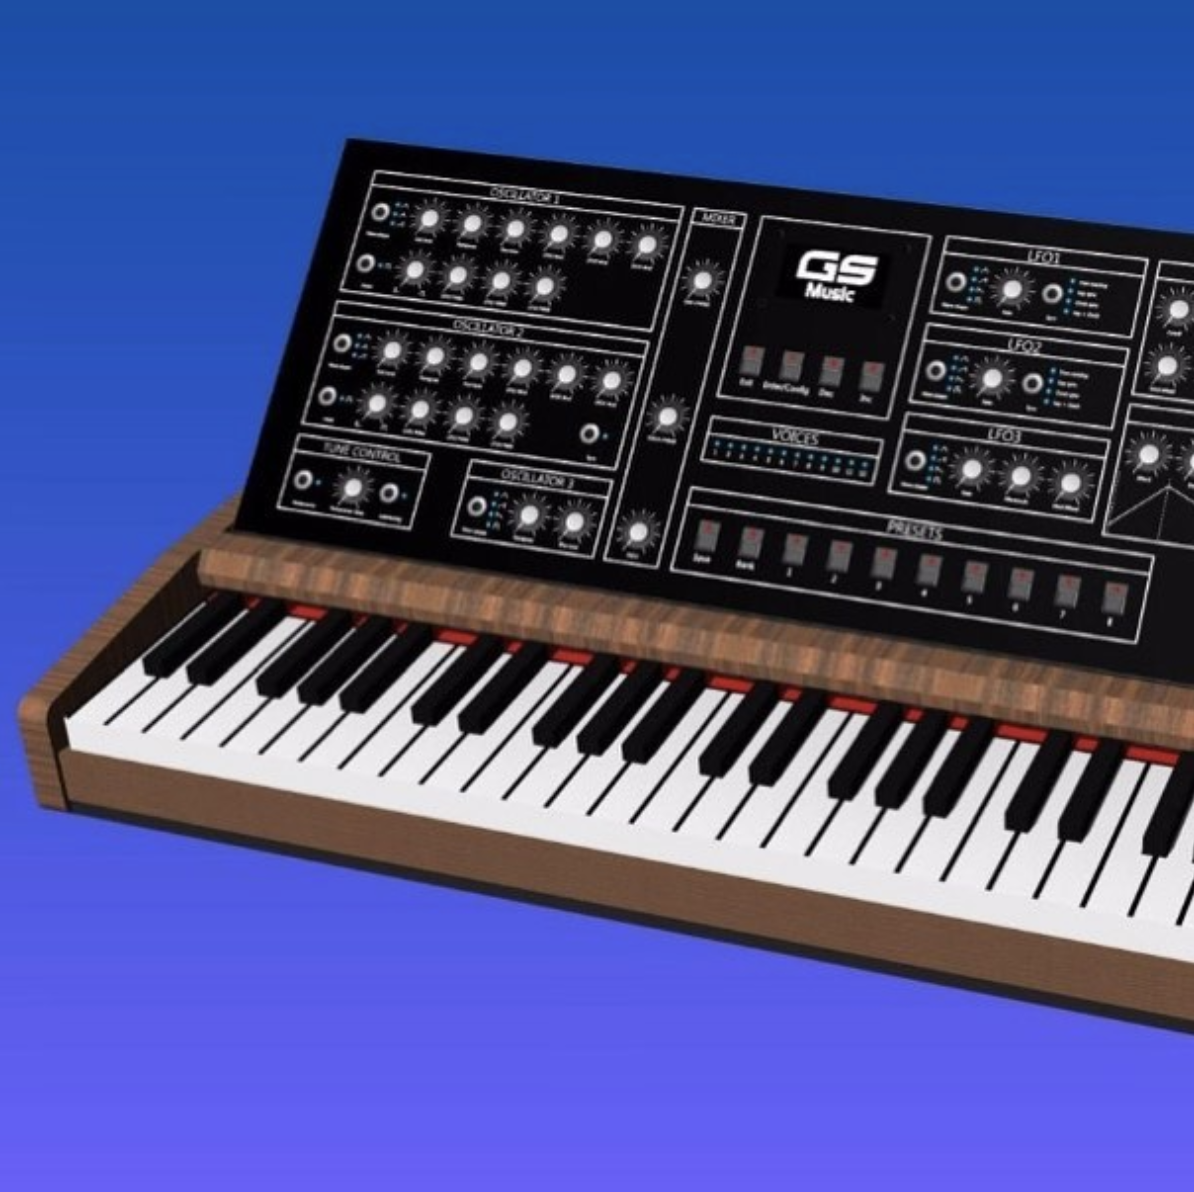 Argentina synth maker GS Music – maker of the Apollo 1 synthesizer